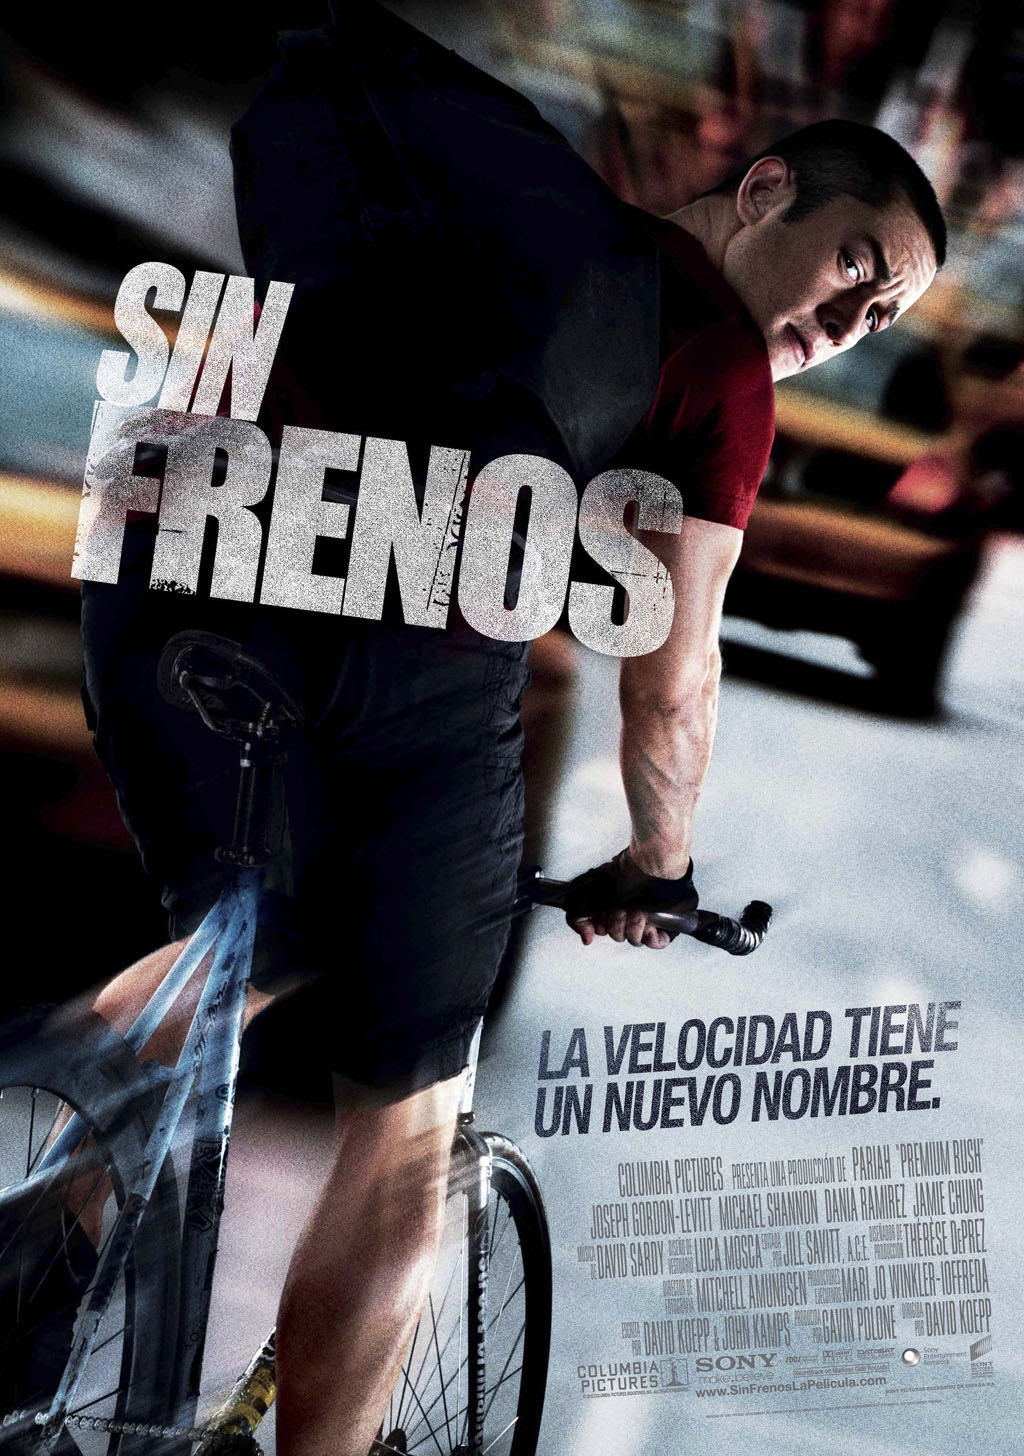 Premium rush Director: David Koepp País: USA Género: Acción